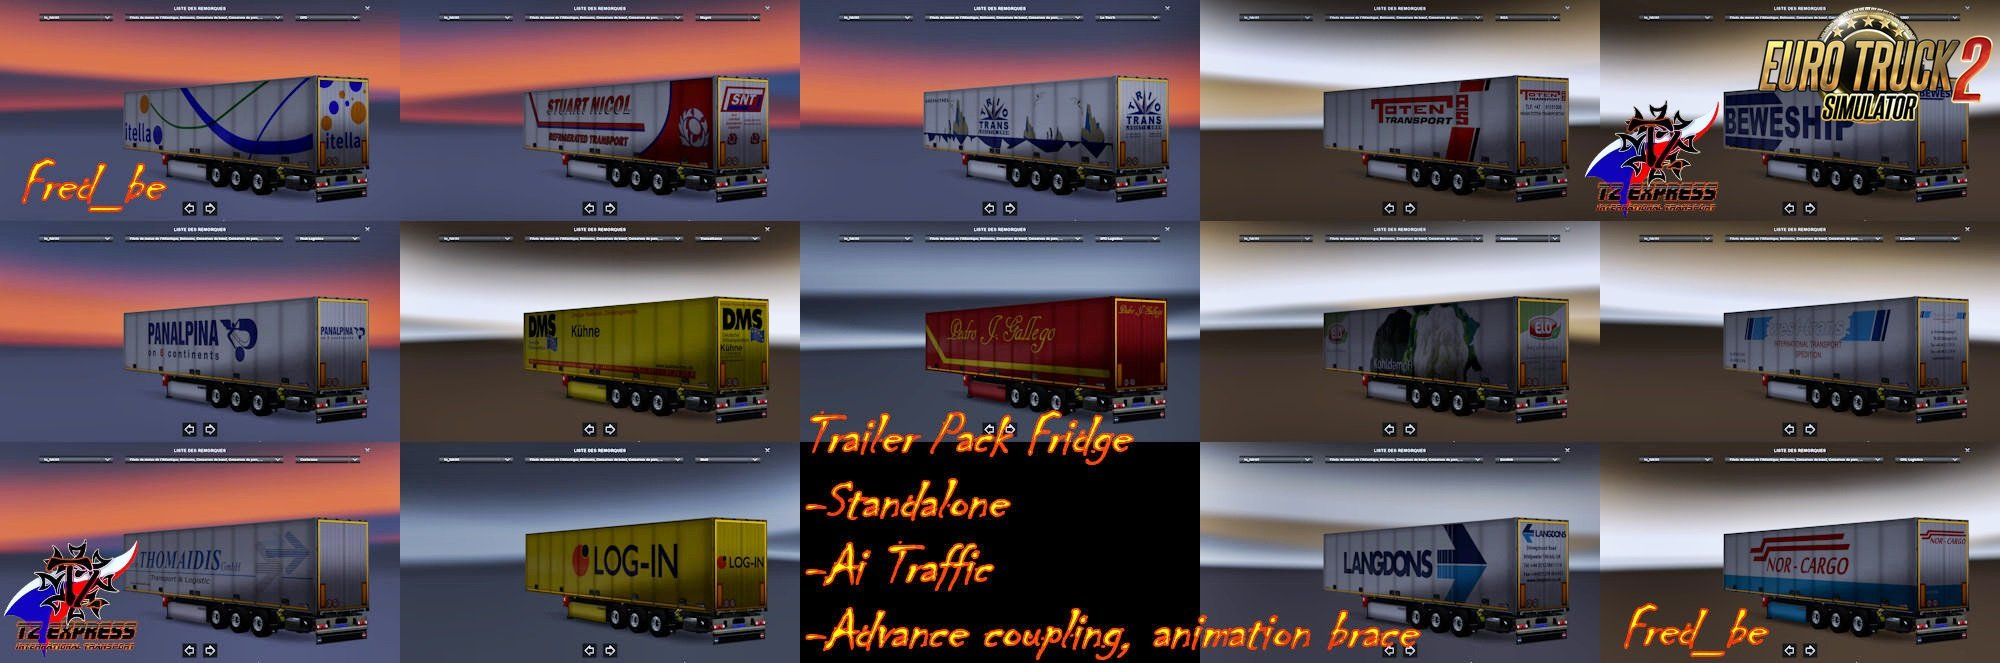 Trailer Pack Fridge v1.26 (39 skins) for Ets2